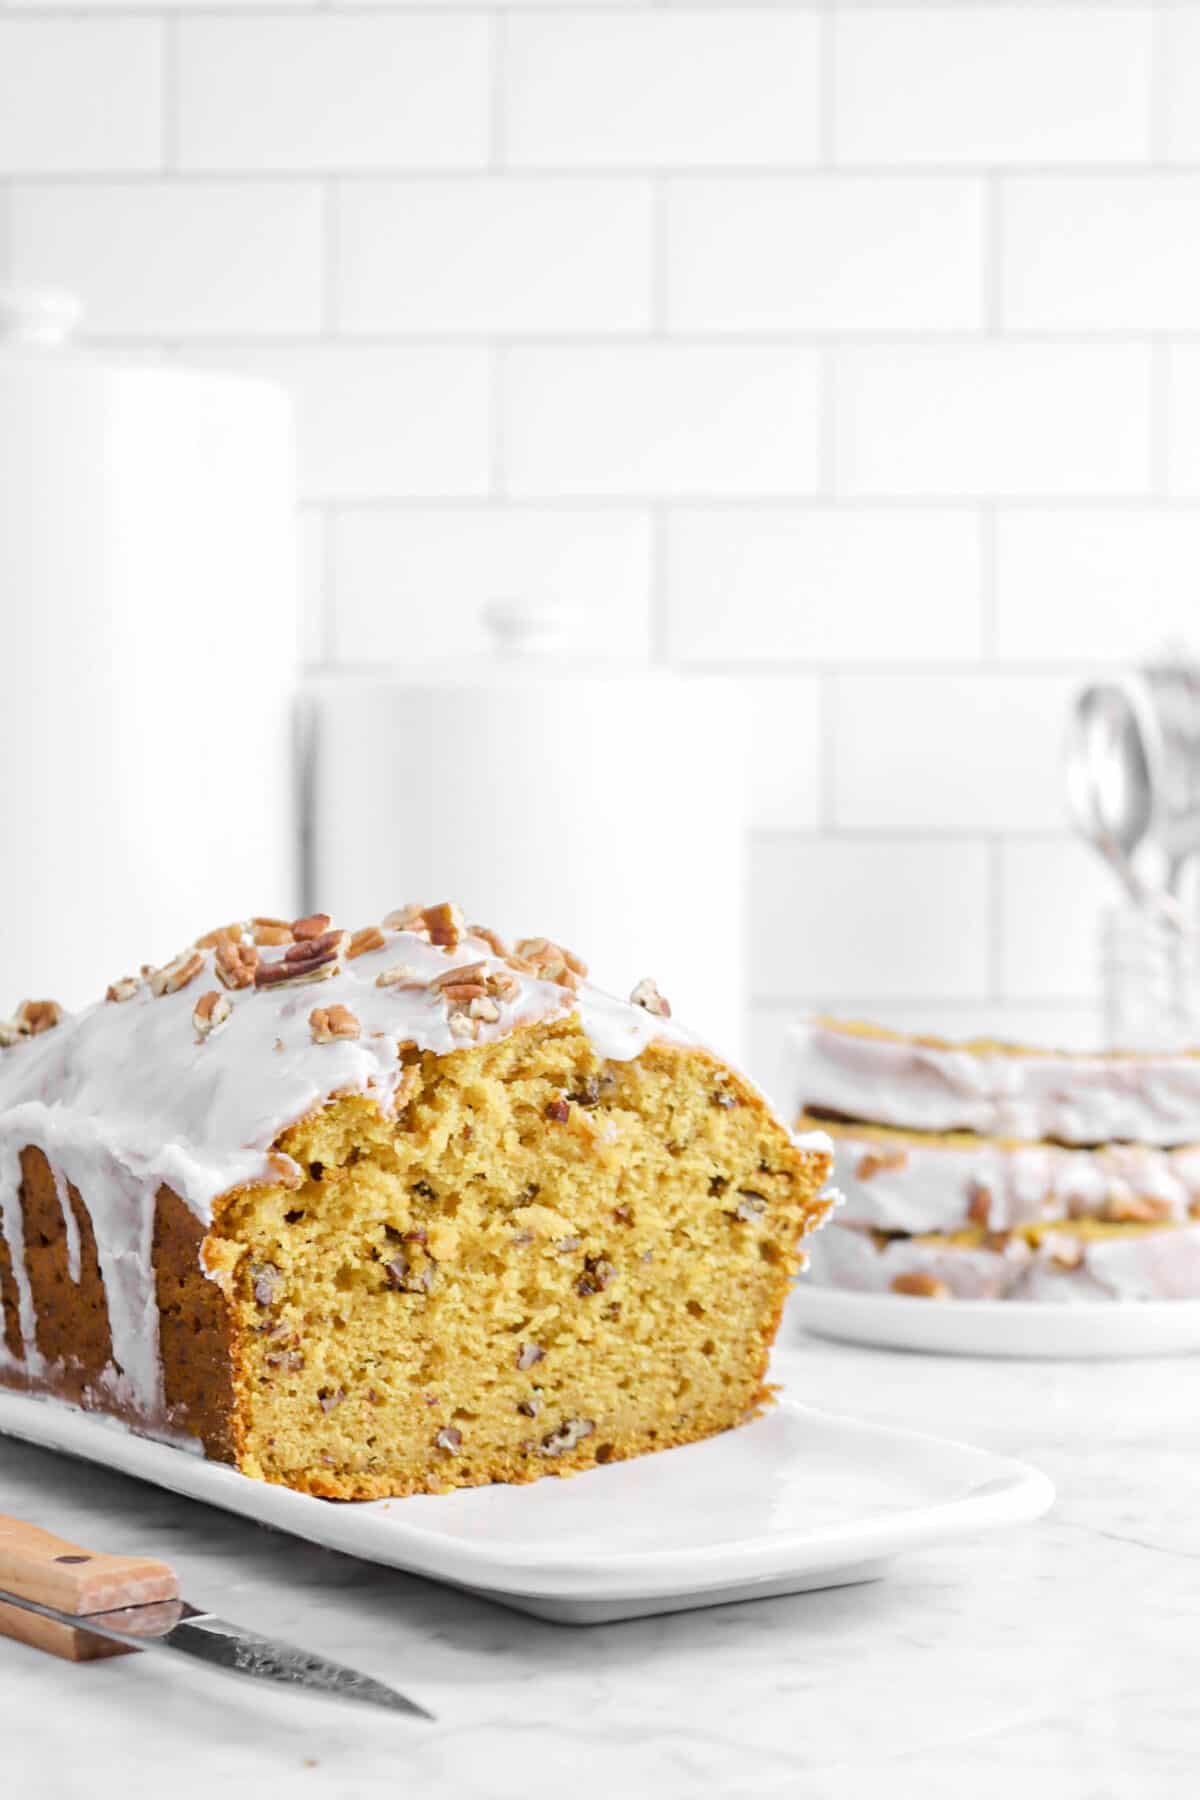 pumpkin bread with three slices stacked behind with a knife, forks, and white containers